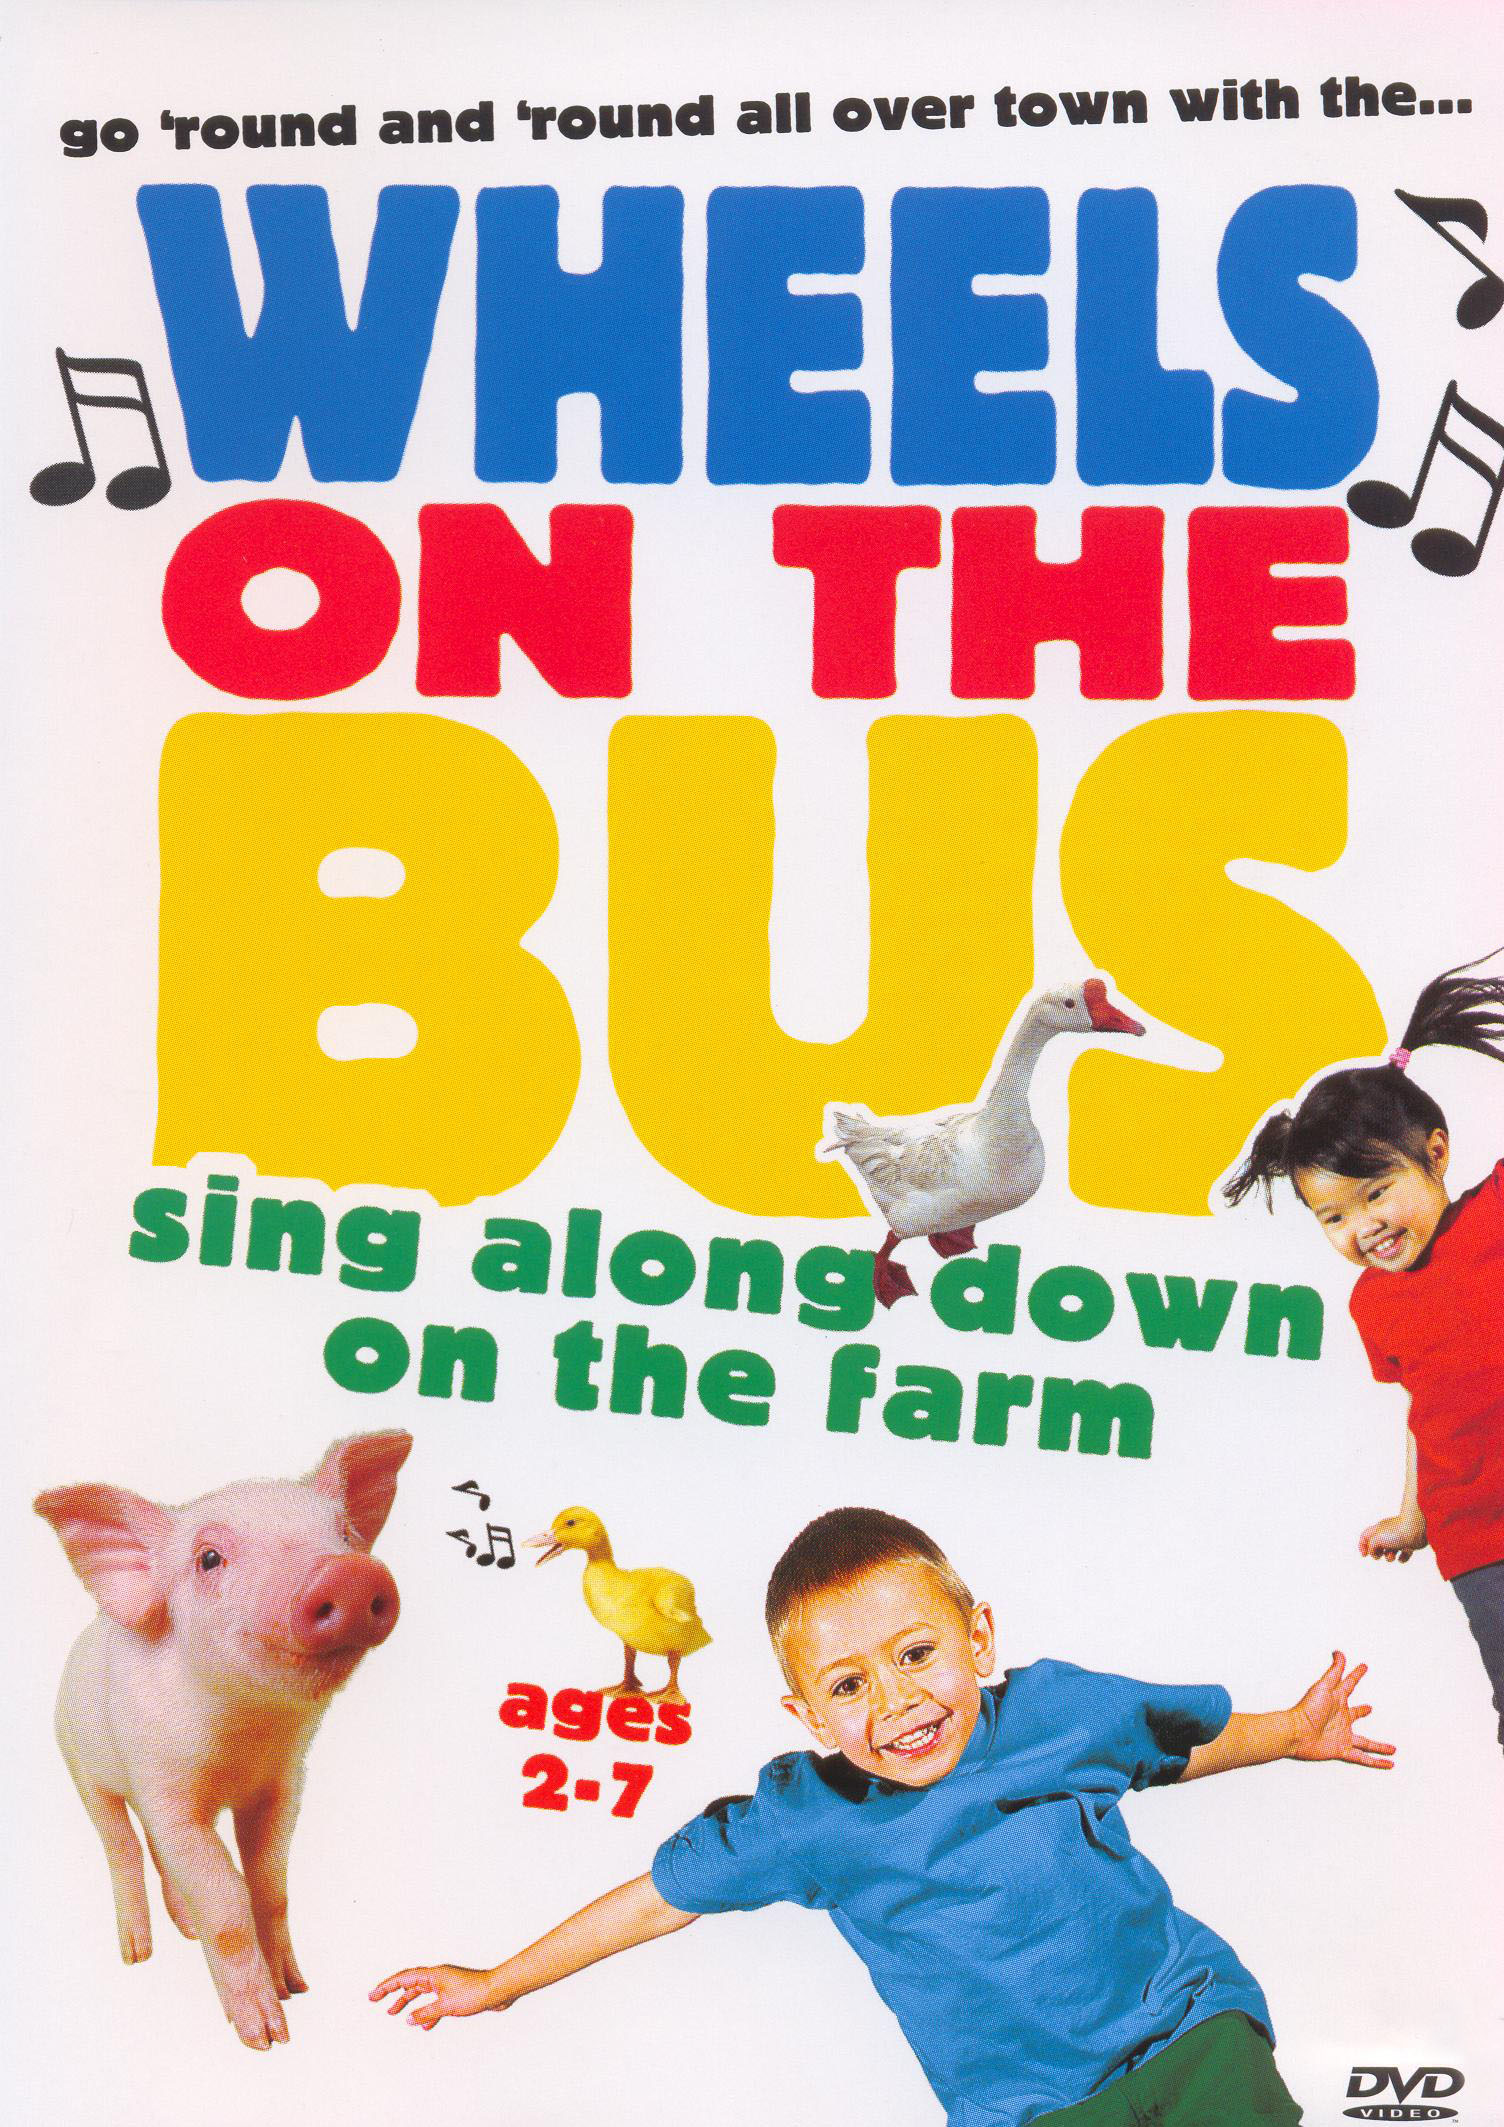 The Wheels on the Bus: Sing Along Down on the Farm